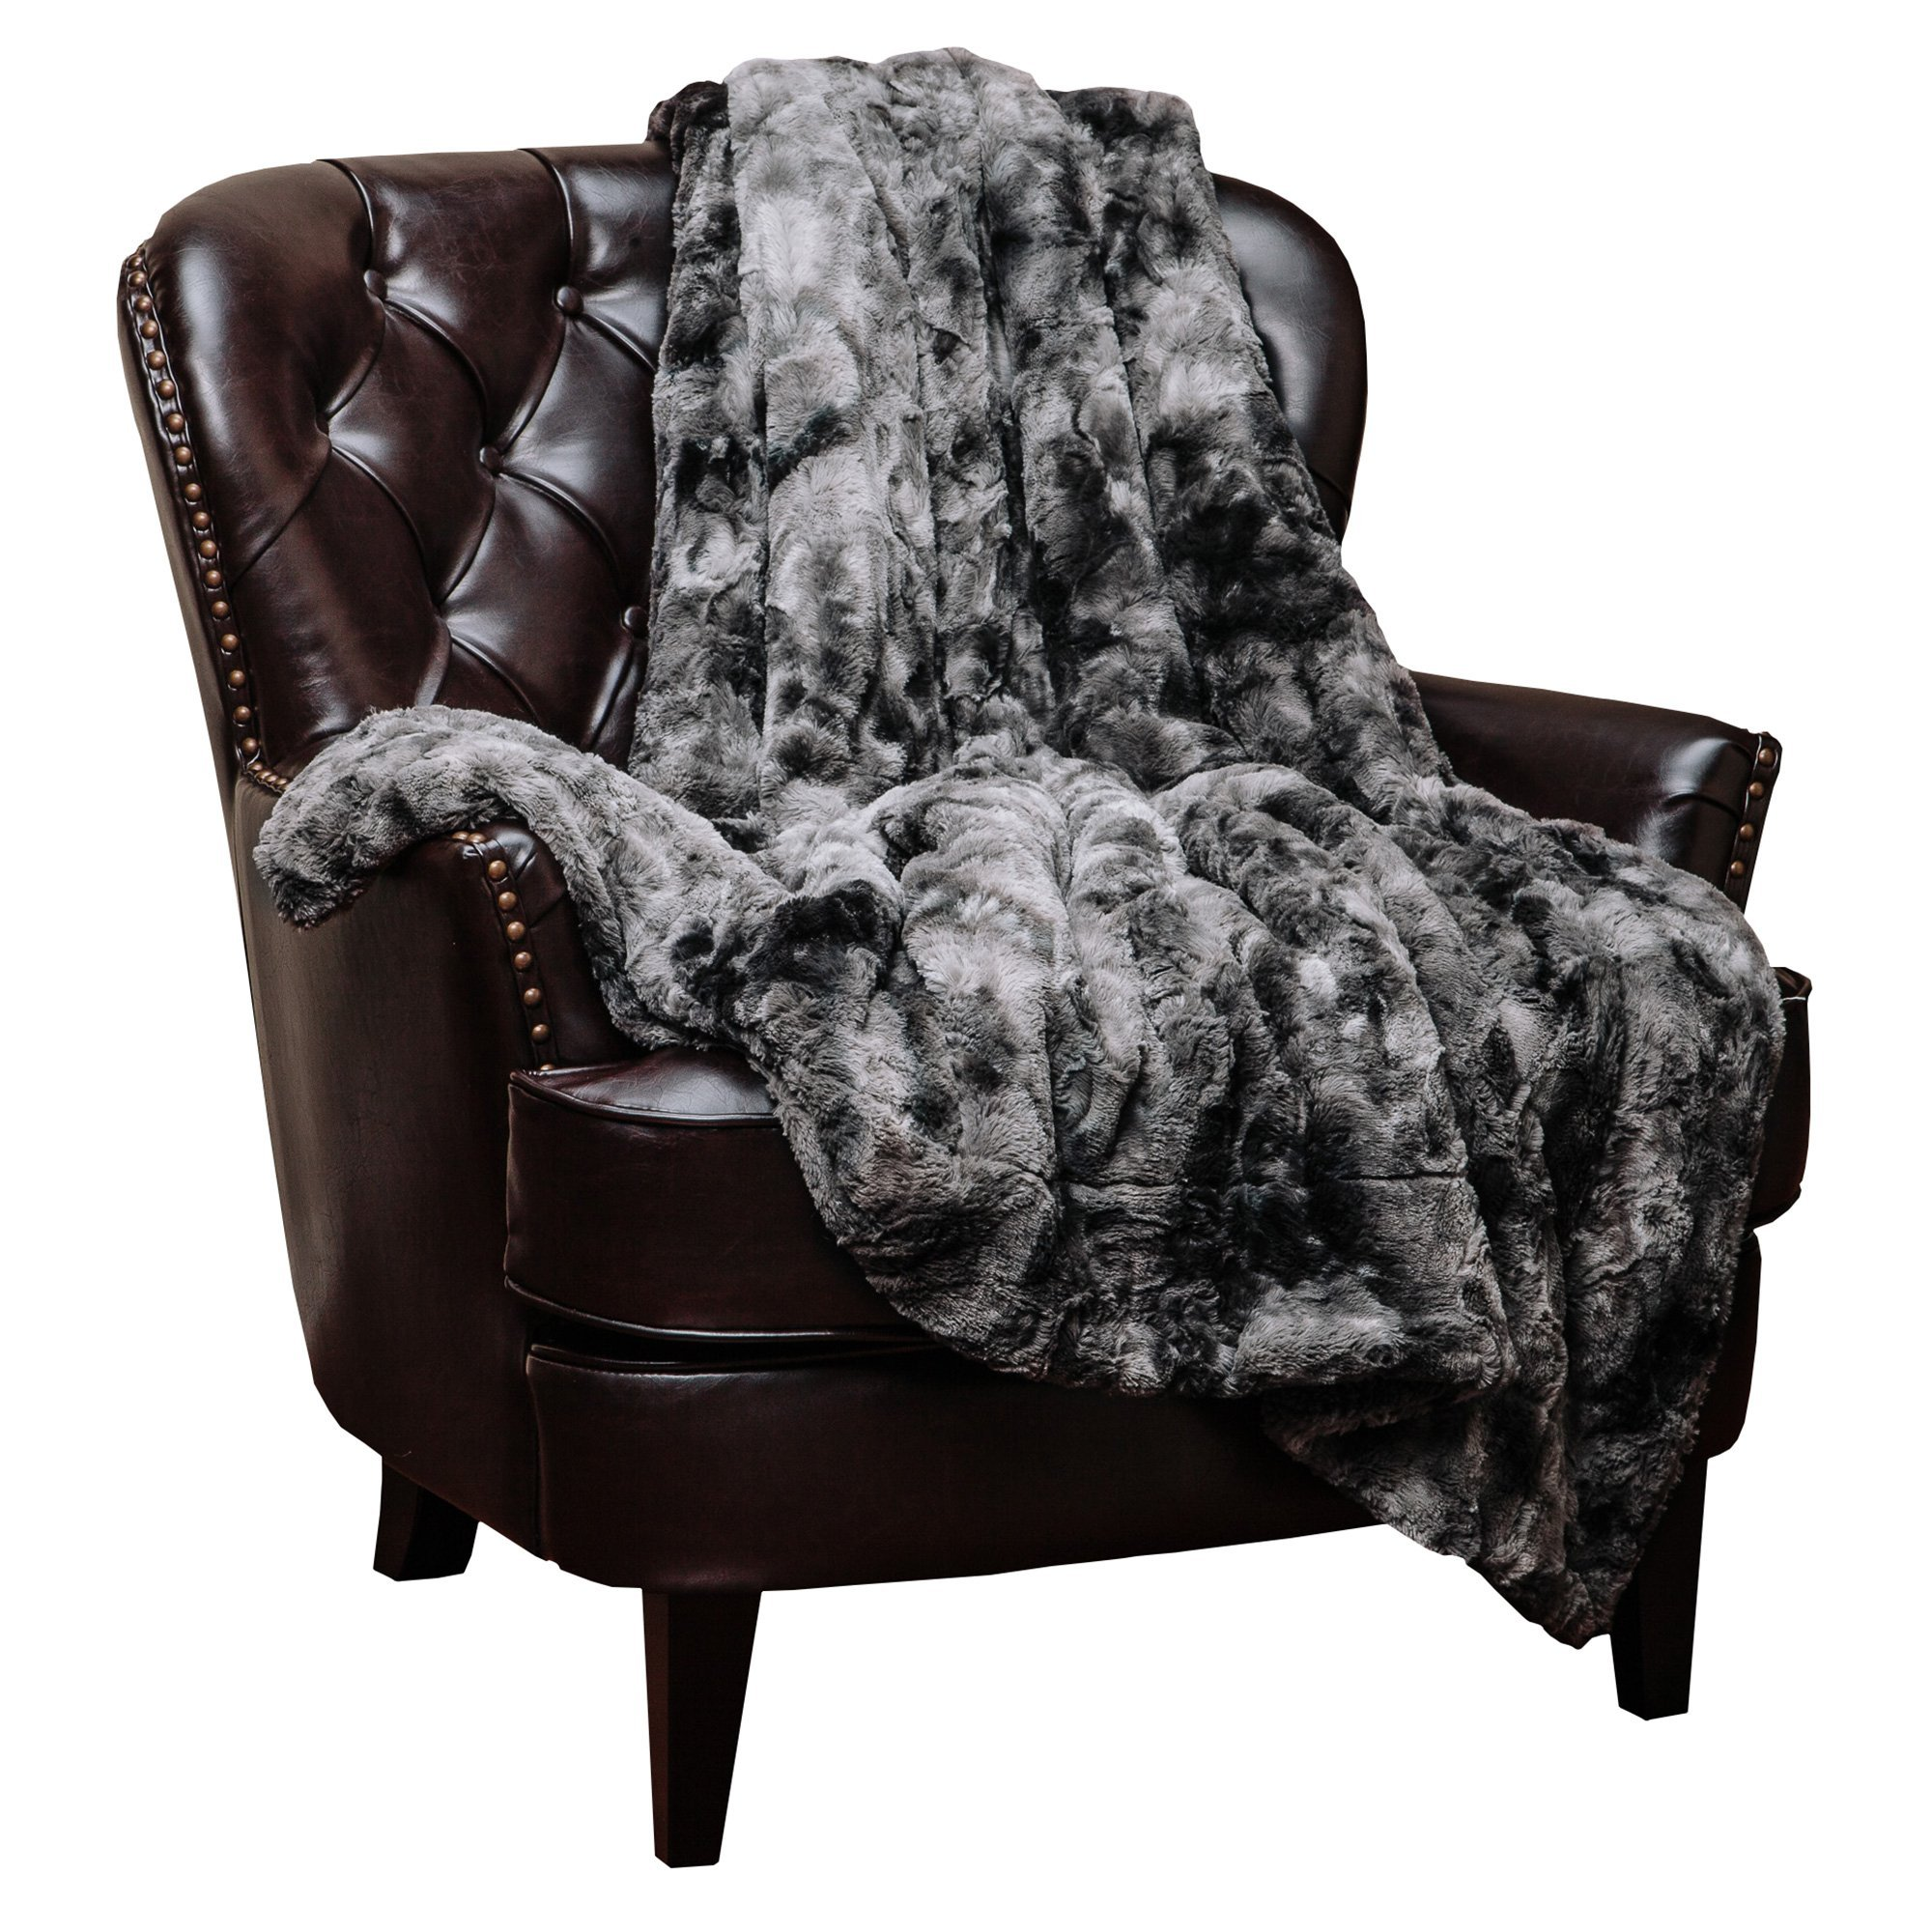 Chanasya Faux Fur Throw Blanket | Super Soft Fuzzy Light Weight Luxurious Cozy Warm Fluffy Plush Hypoallergenic Blanket for Bed Couch Chair Fall Winter Spring Living Room (50'' x 65'') - Dark Grey